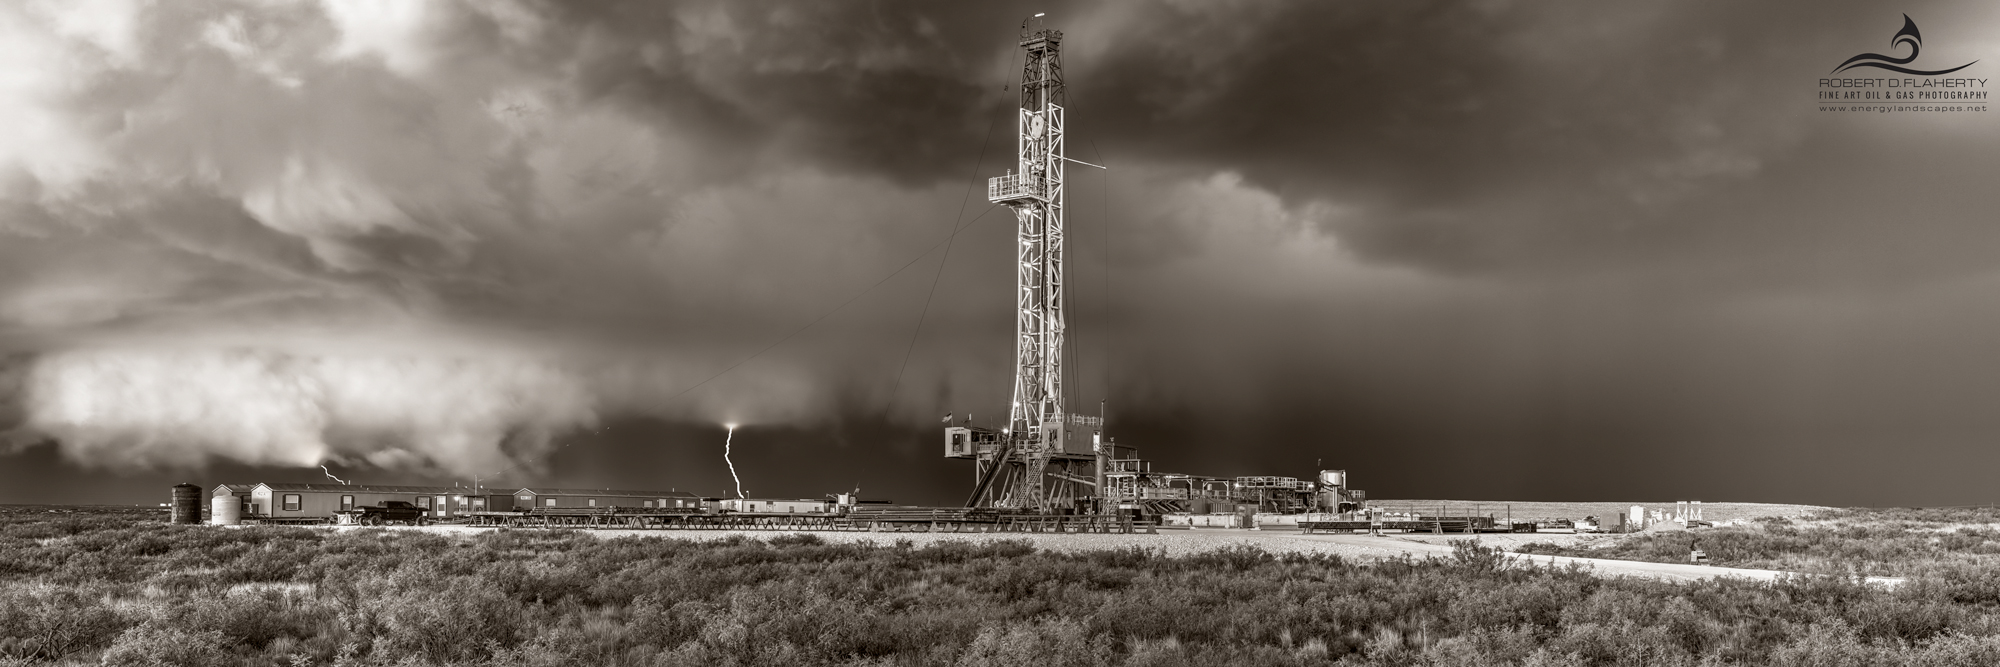 drilling rig, Precision Corp. Drilling, directional well, thunderstorm, hail, tornado, F3 tornado, sepia, New Mexico, Jal New Mexico, high resolution, panorama, Delaware Basin, Permian Basin, photo